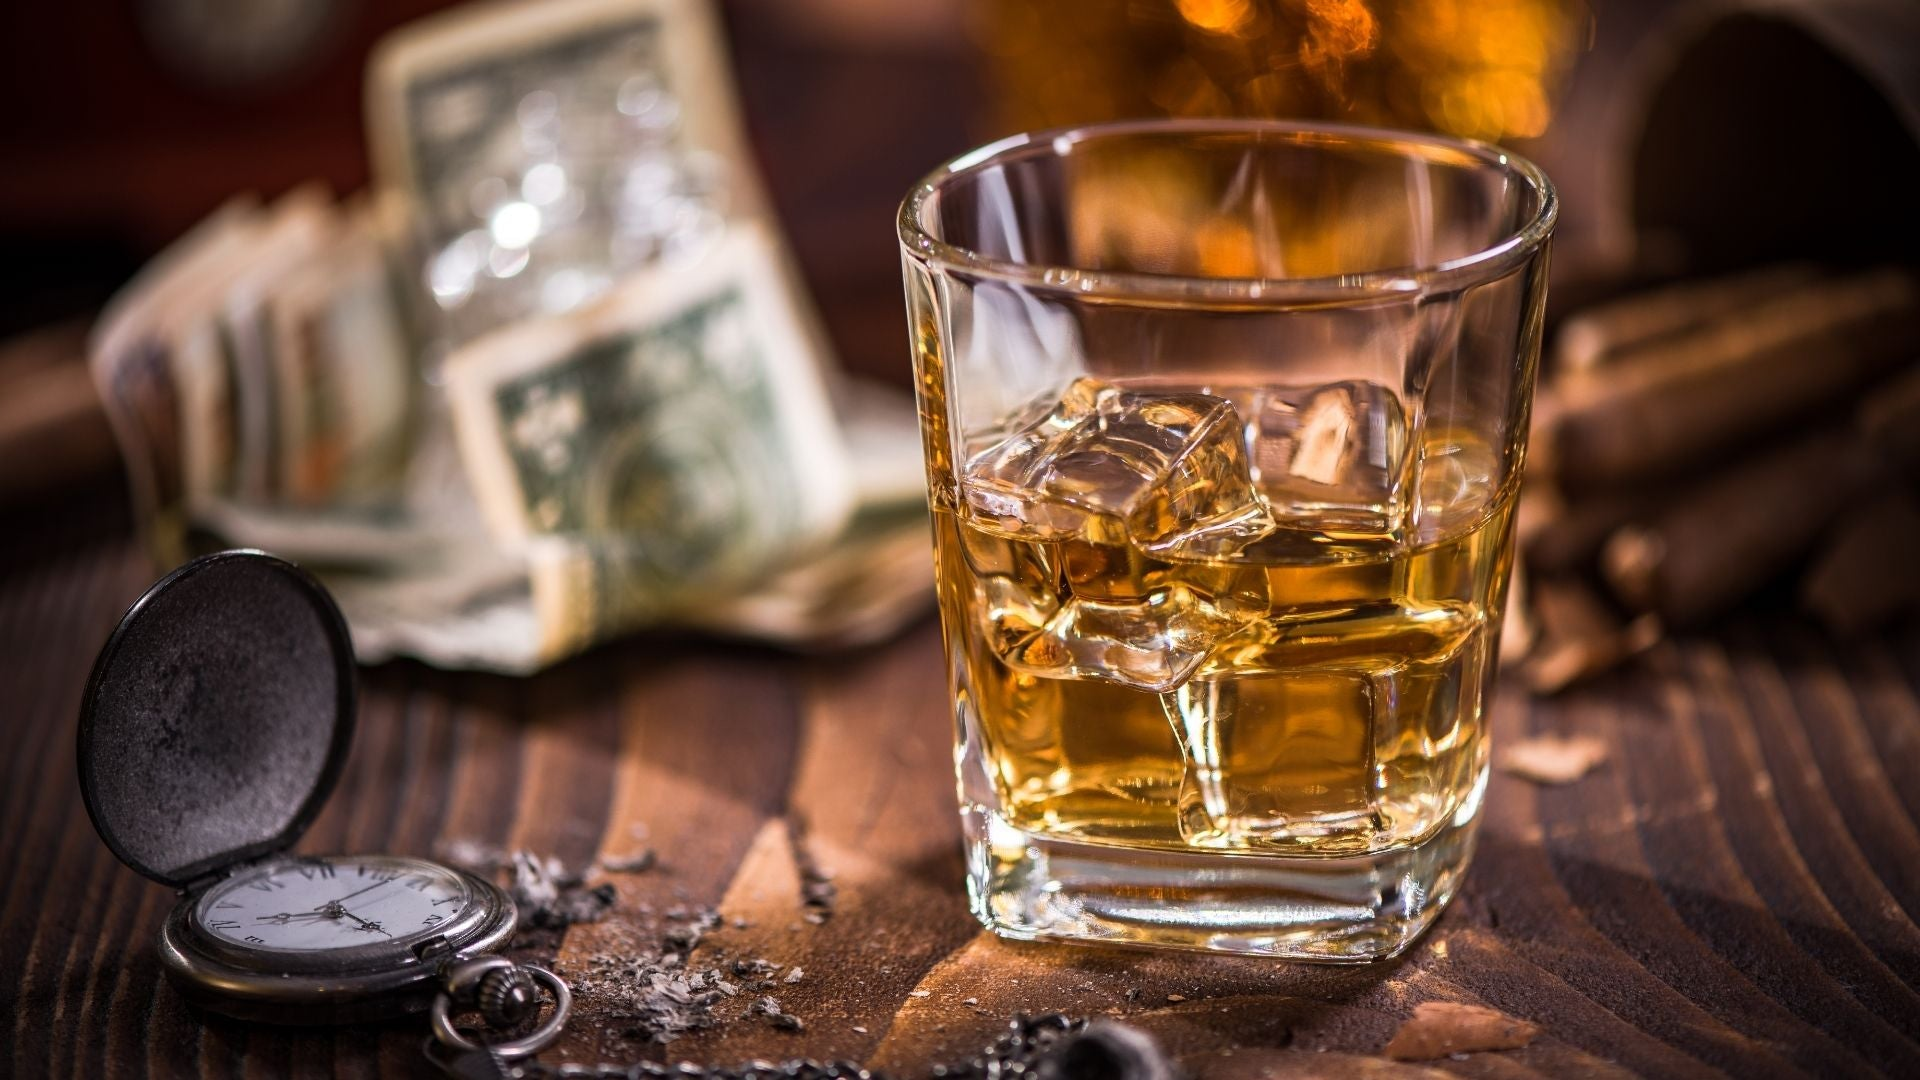 How To Pour Liquor Like A Champ: A Beginner's Guide